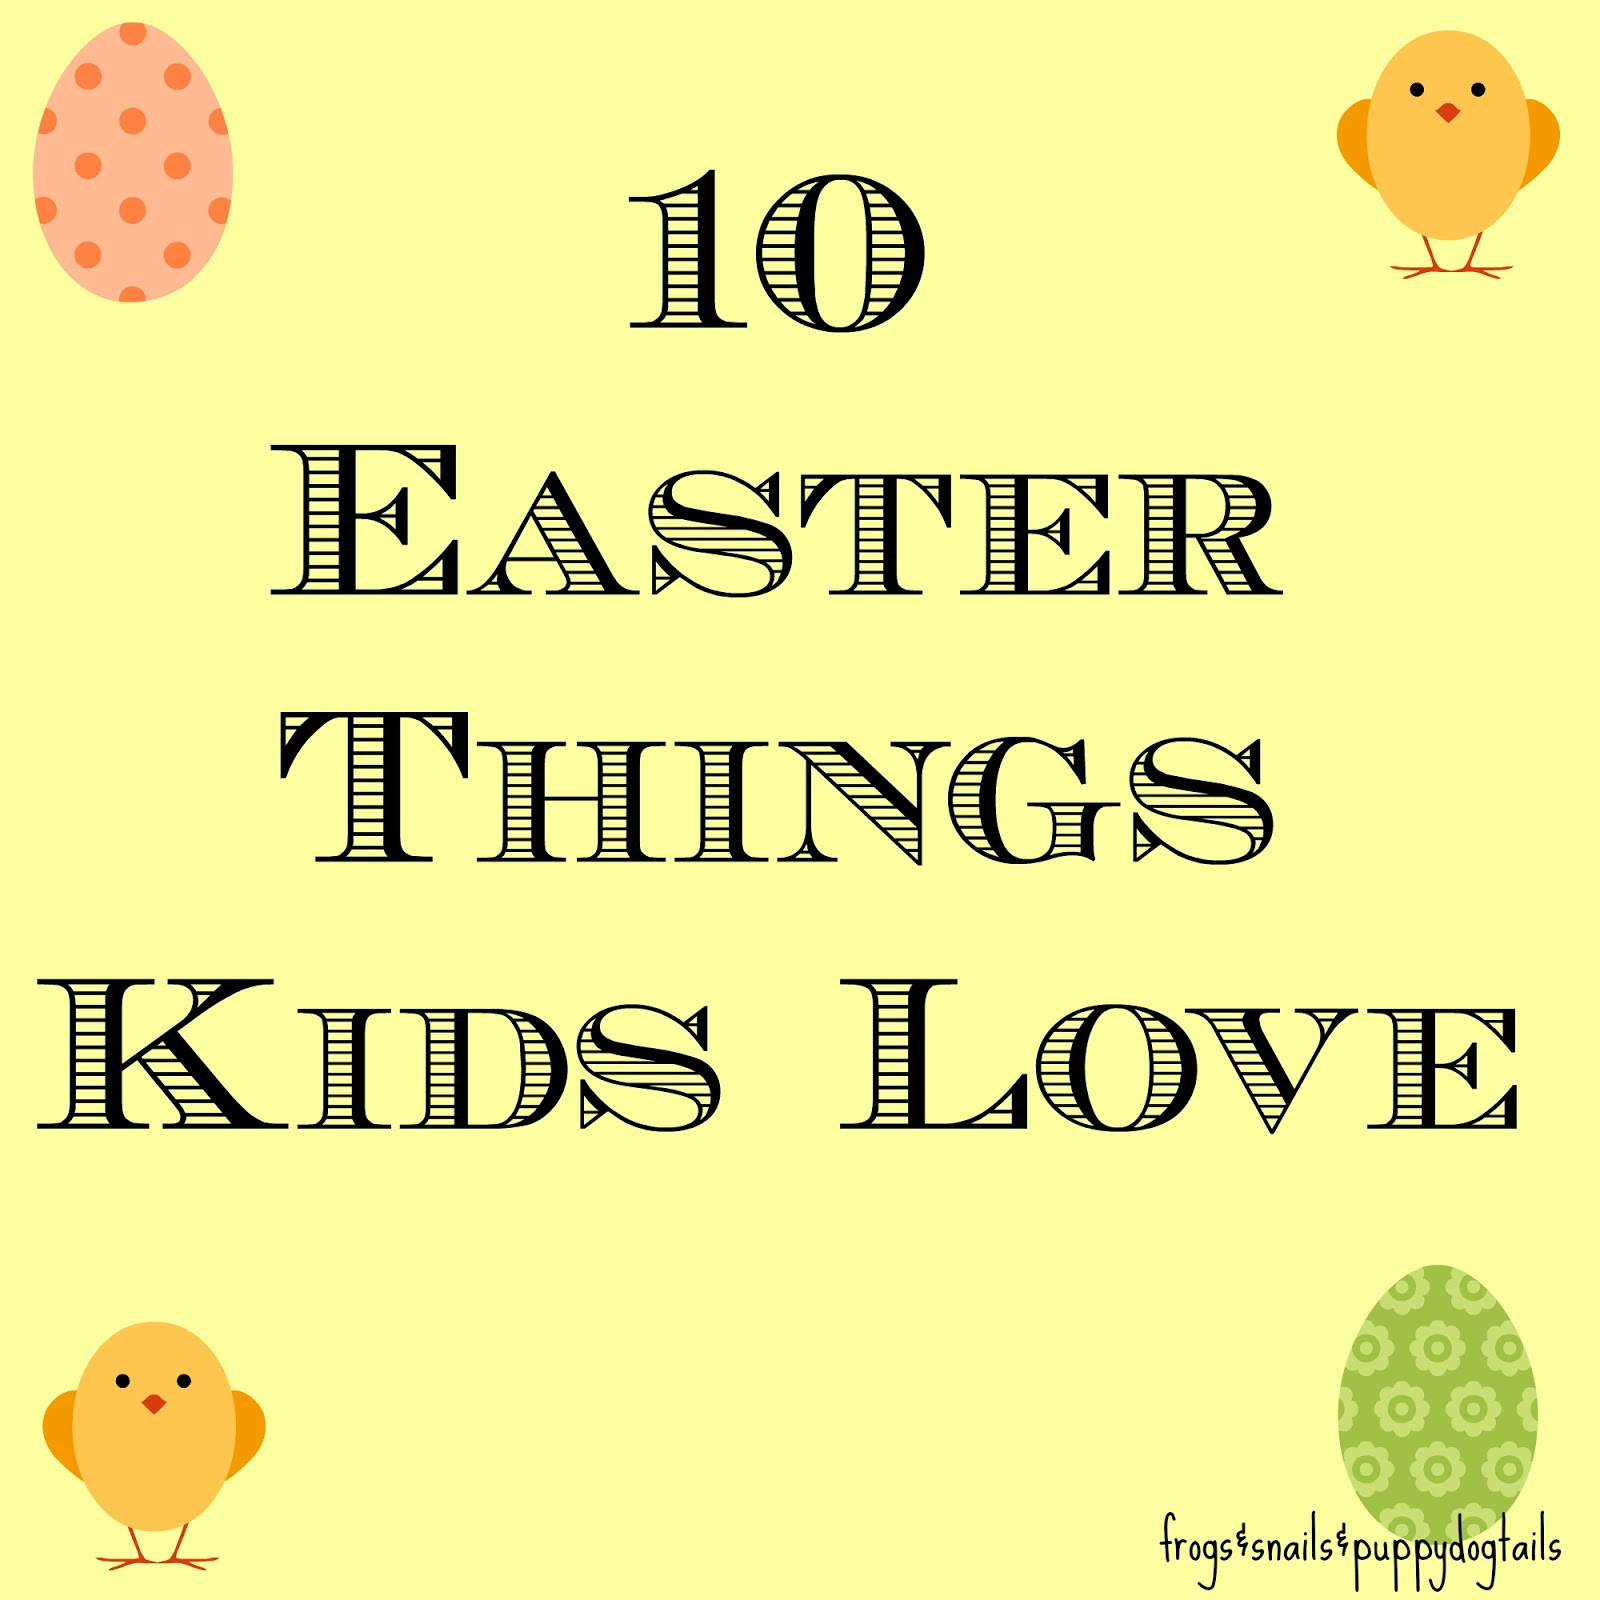 10 Easter Activities Kids Love